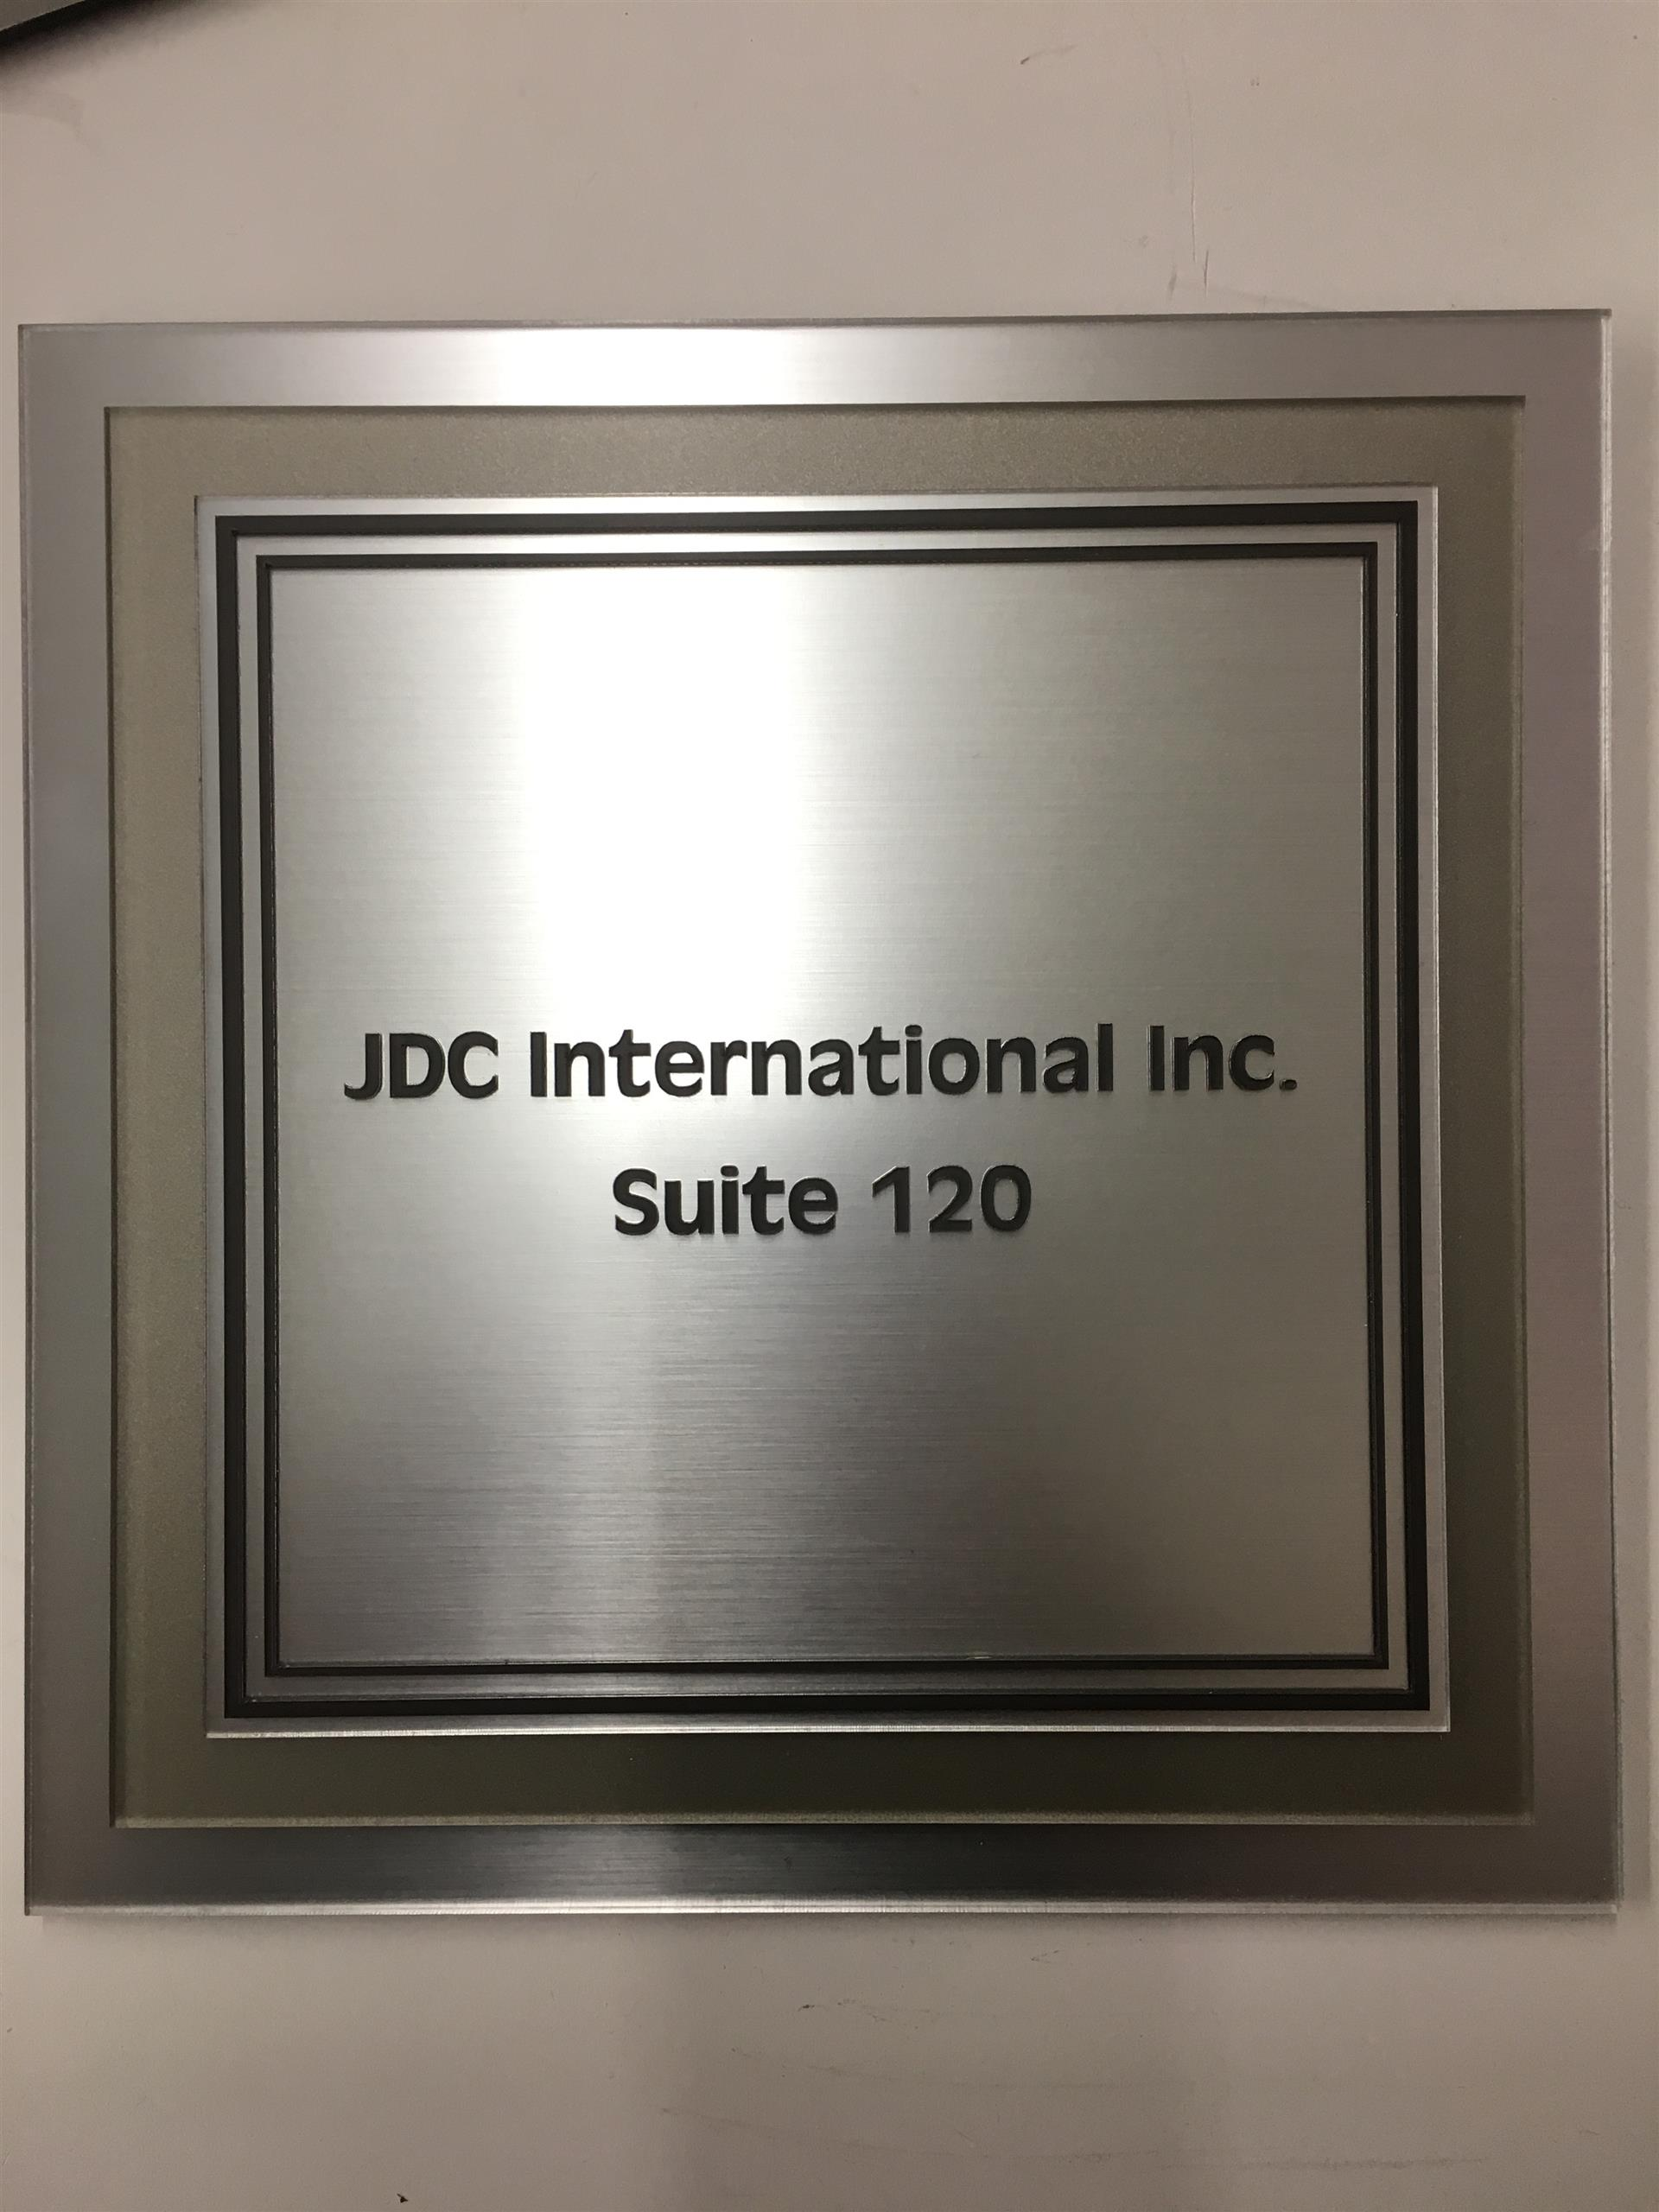 JDC International Inc. ADA Sign